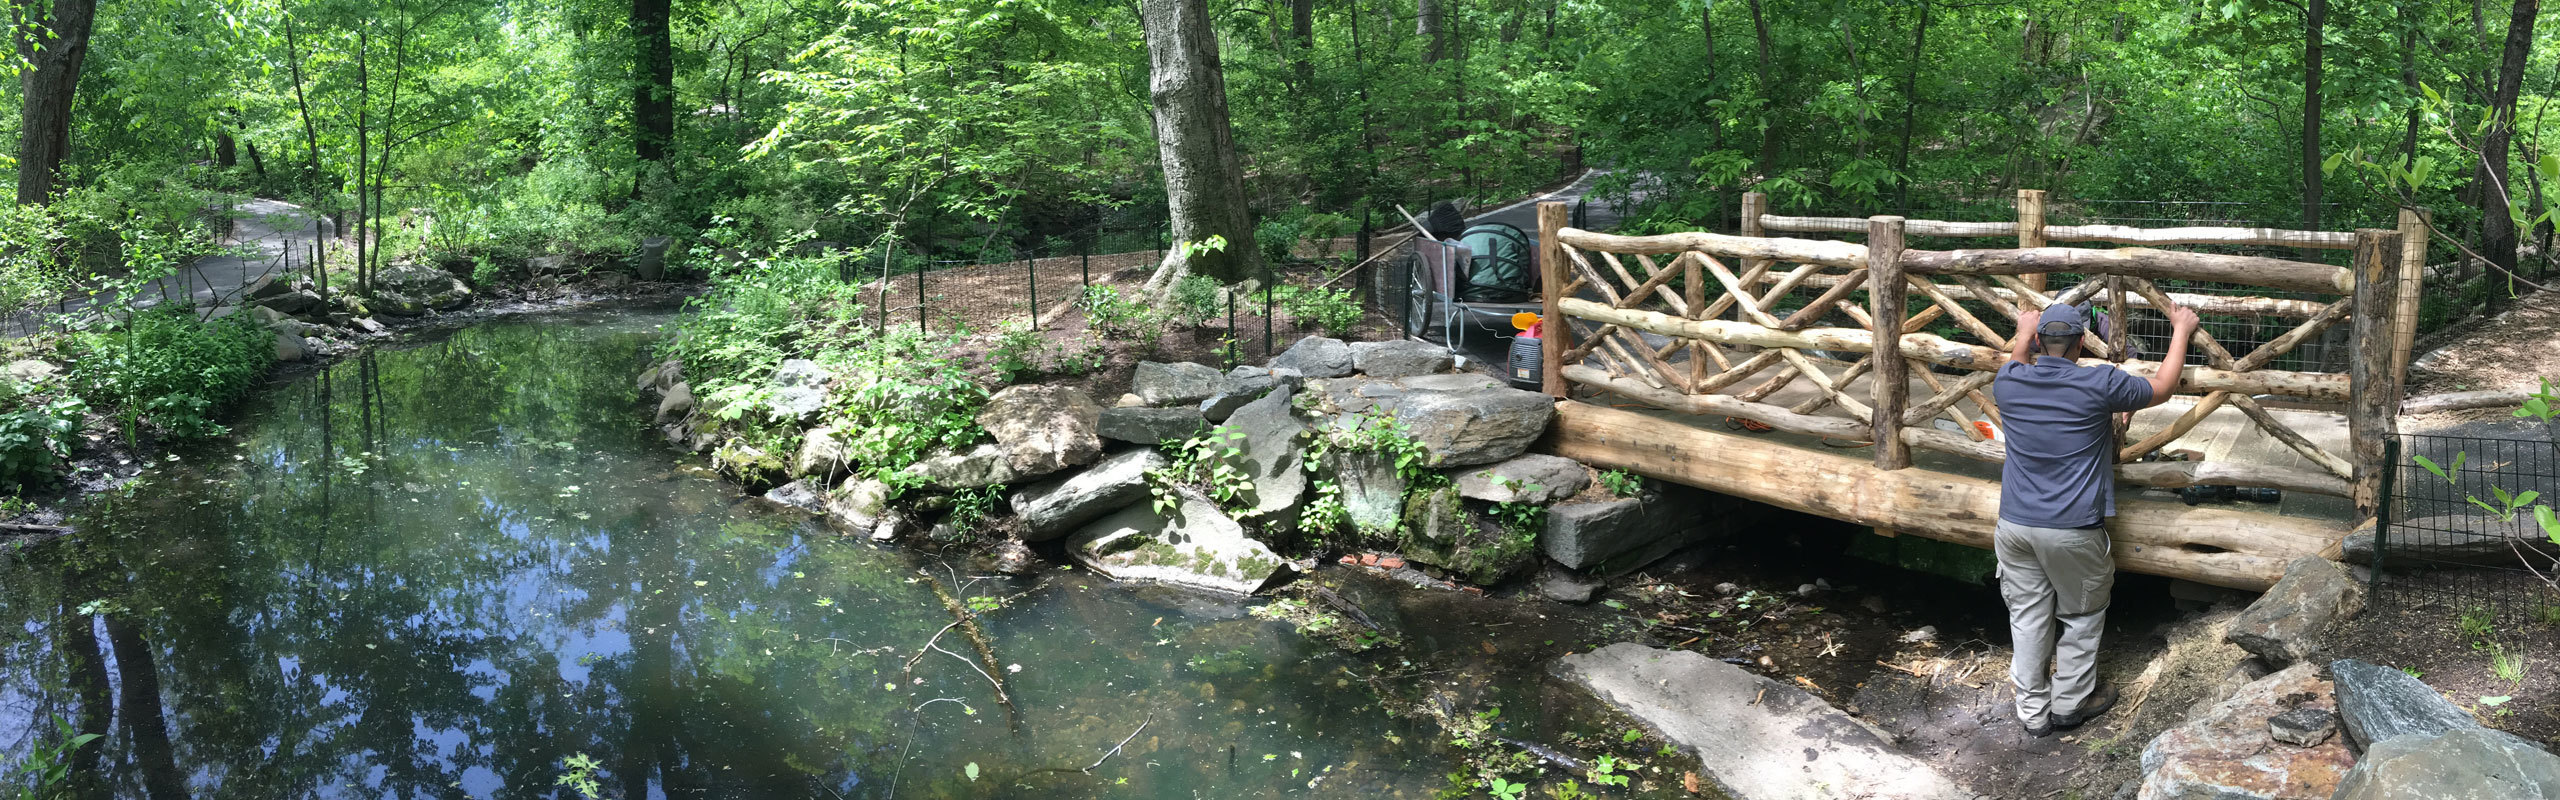 A Conservancy worker seen maintaining a rusitc bridge in the Ramble